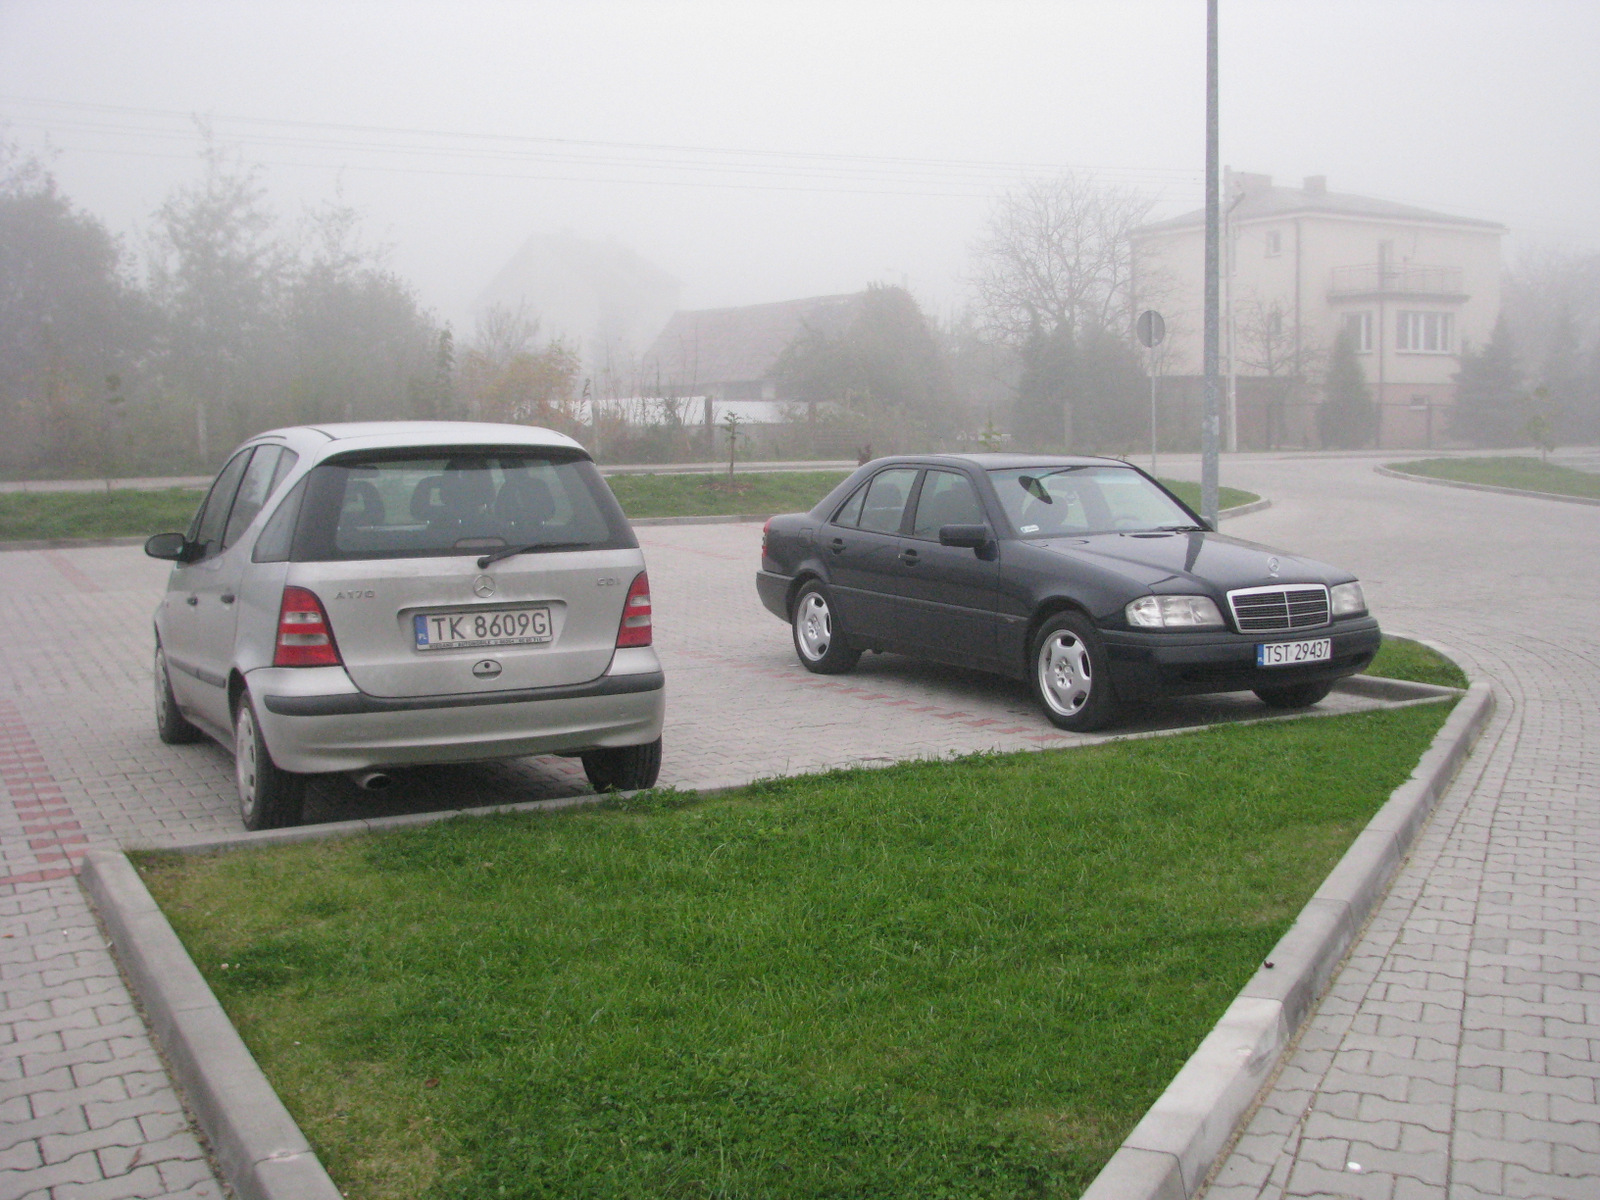 http://124coupe.pl/hosting/images/img001apa.jpg